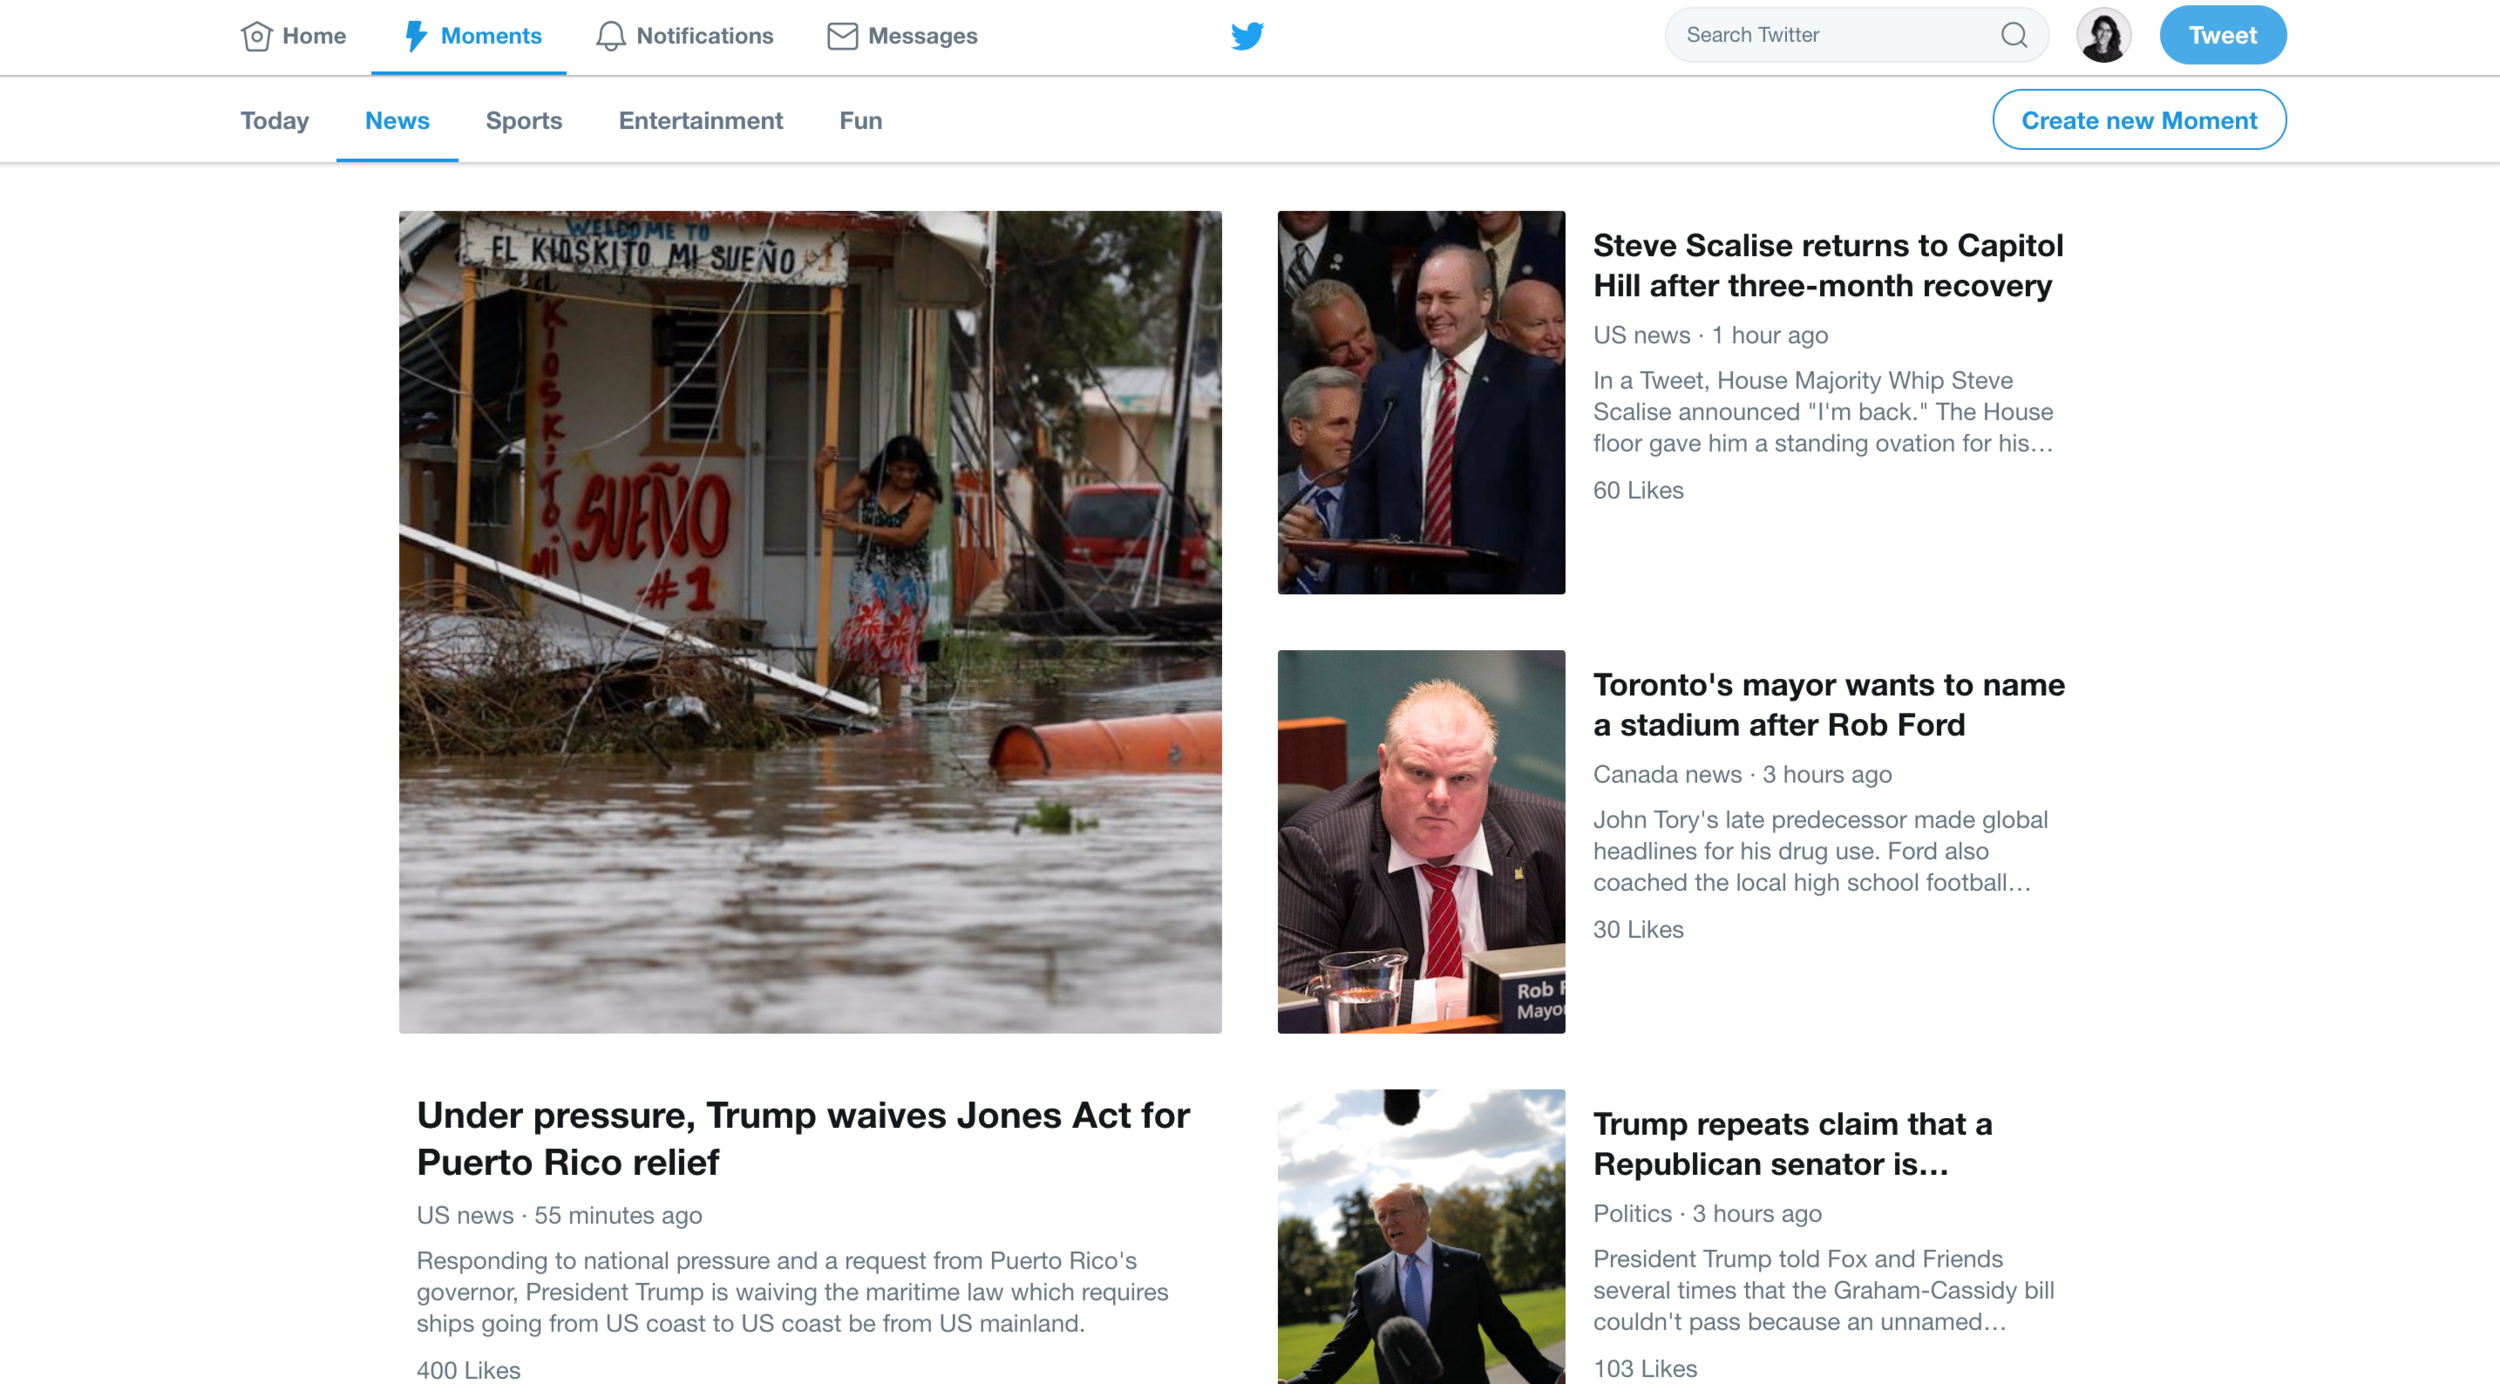 Front page of Twitter Moments.